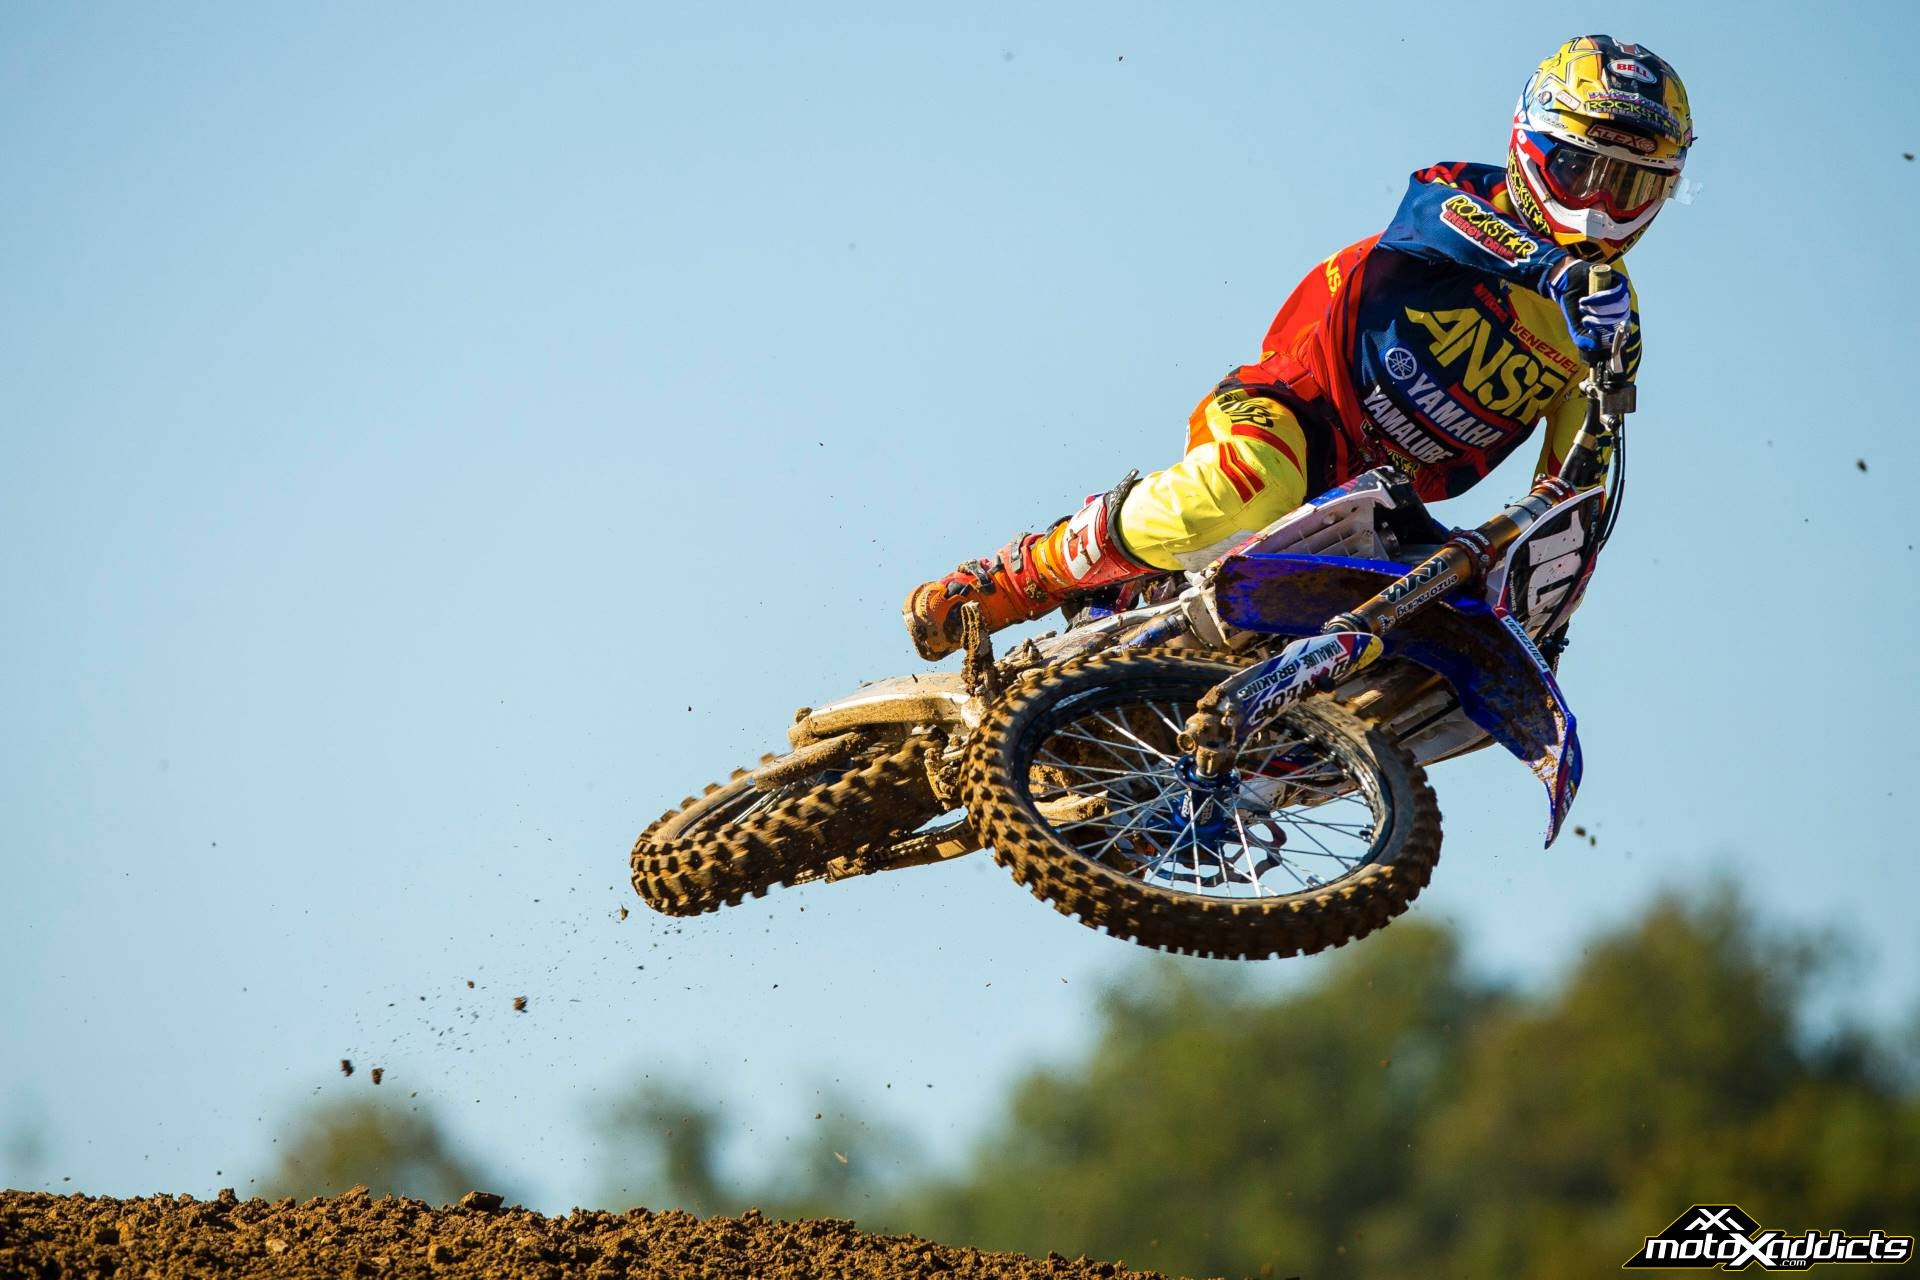 2015 MXoN - Anthony Rodriguez